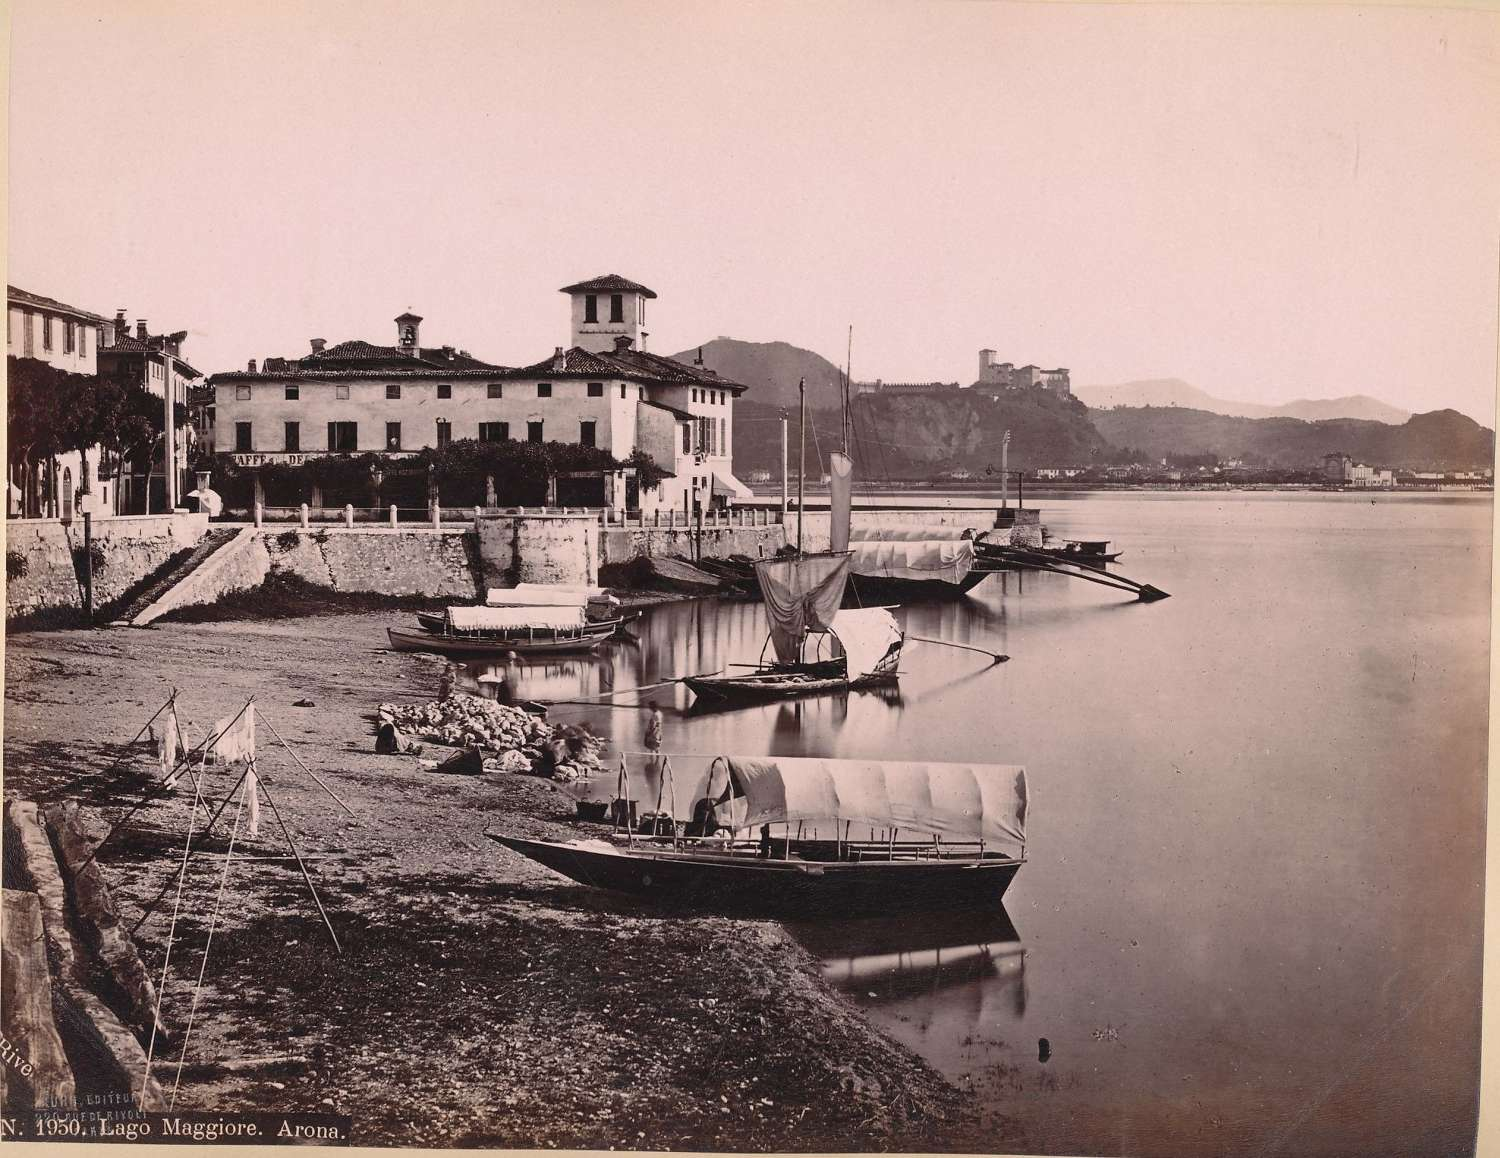 Italy Arona Lake Maggire By J. Kuhn.No 1950  C1880